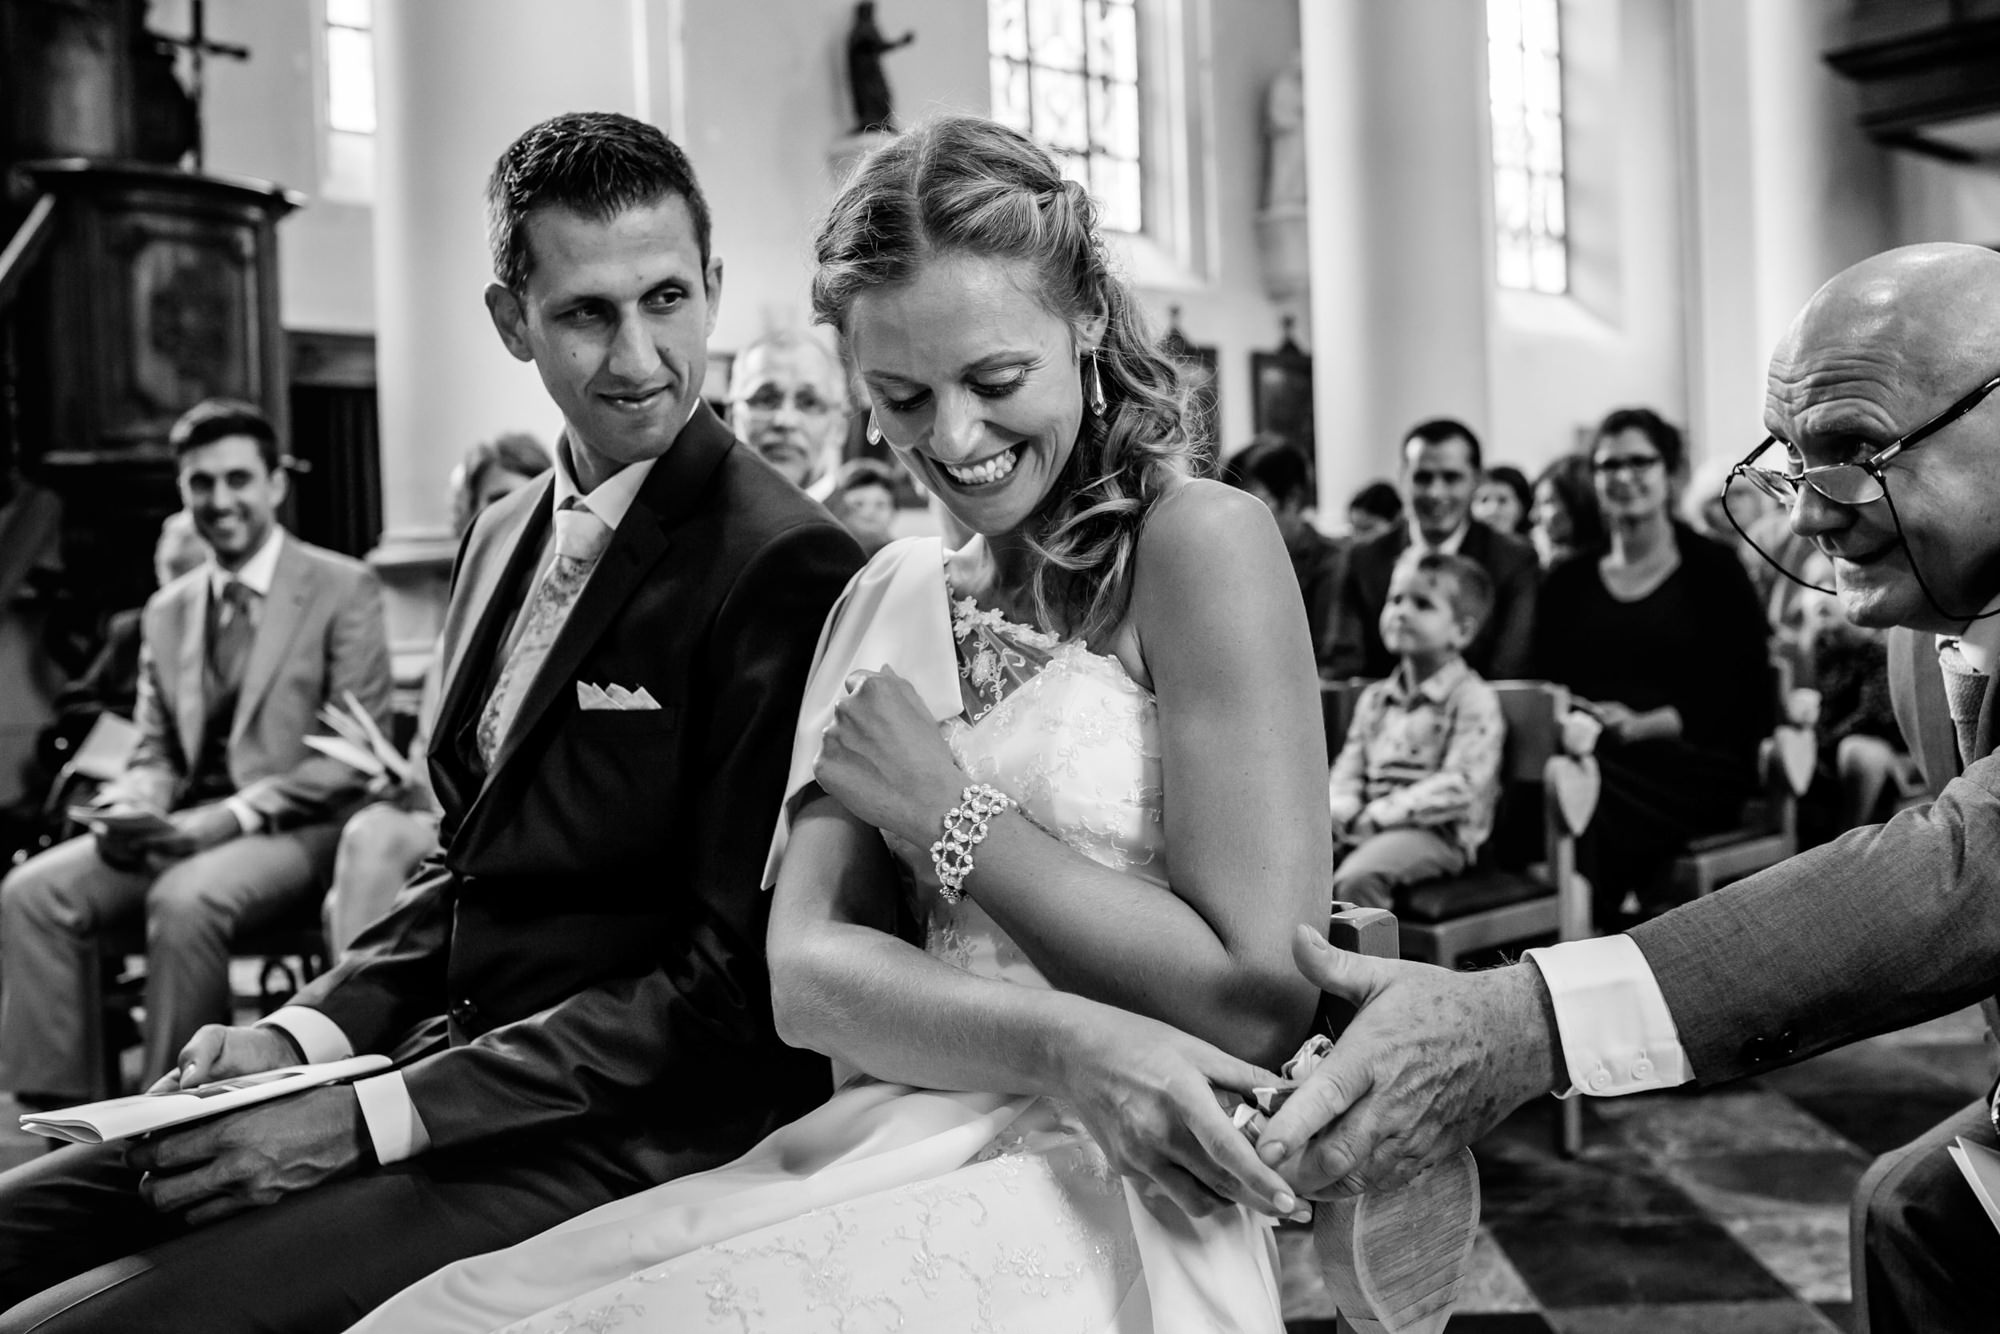 Guest passes bride a handkerchief during ceremony - photo by Phillipe Swiggers